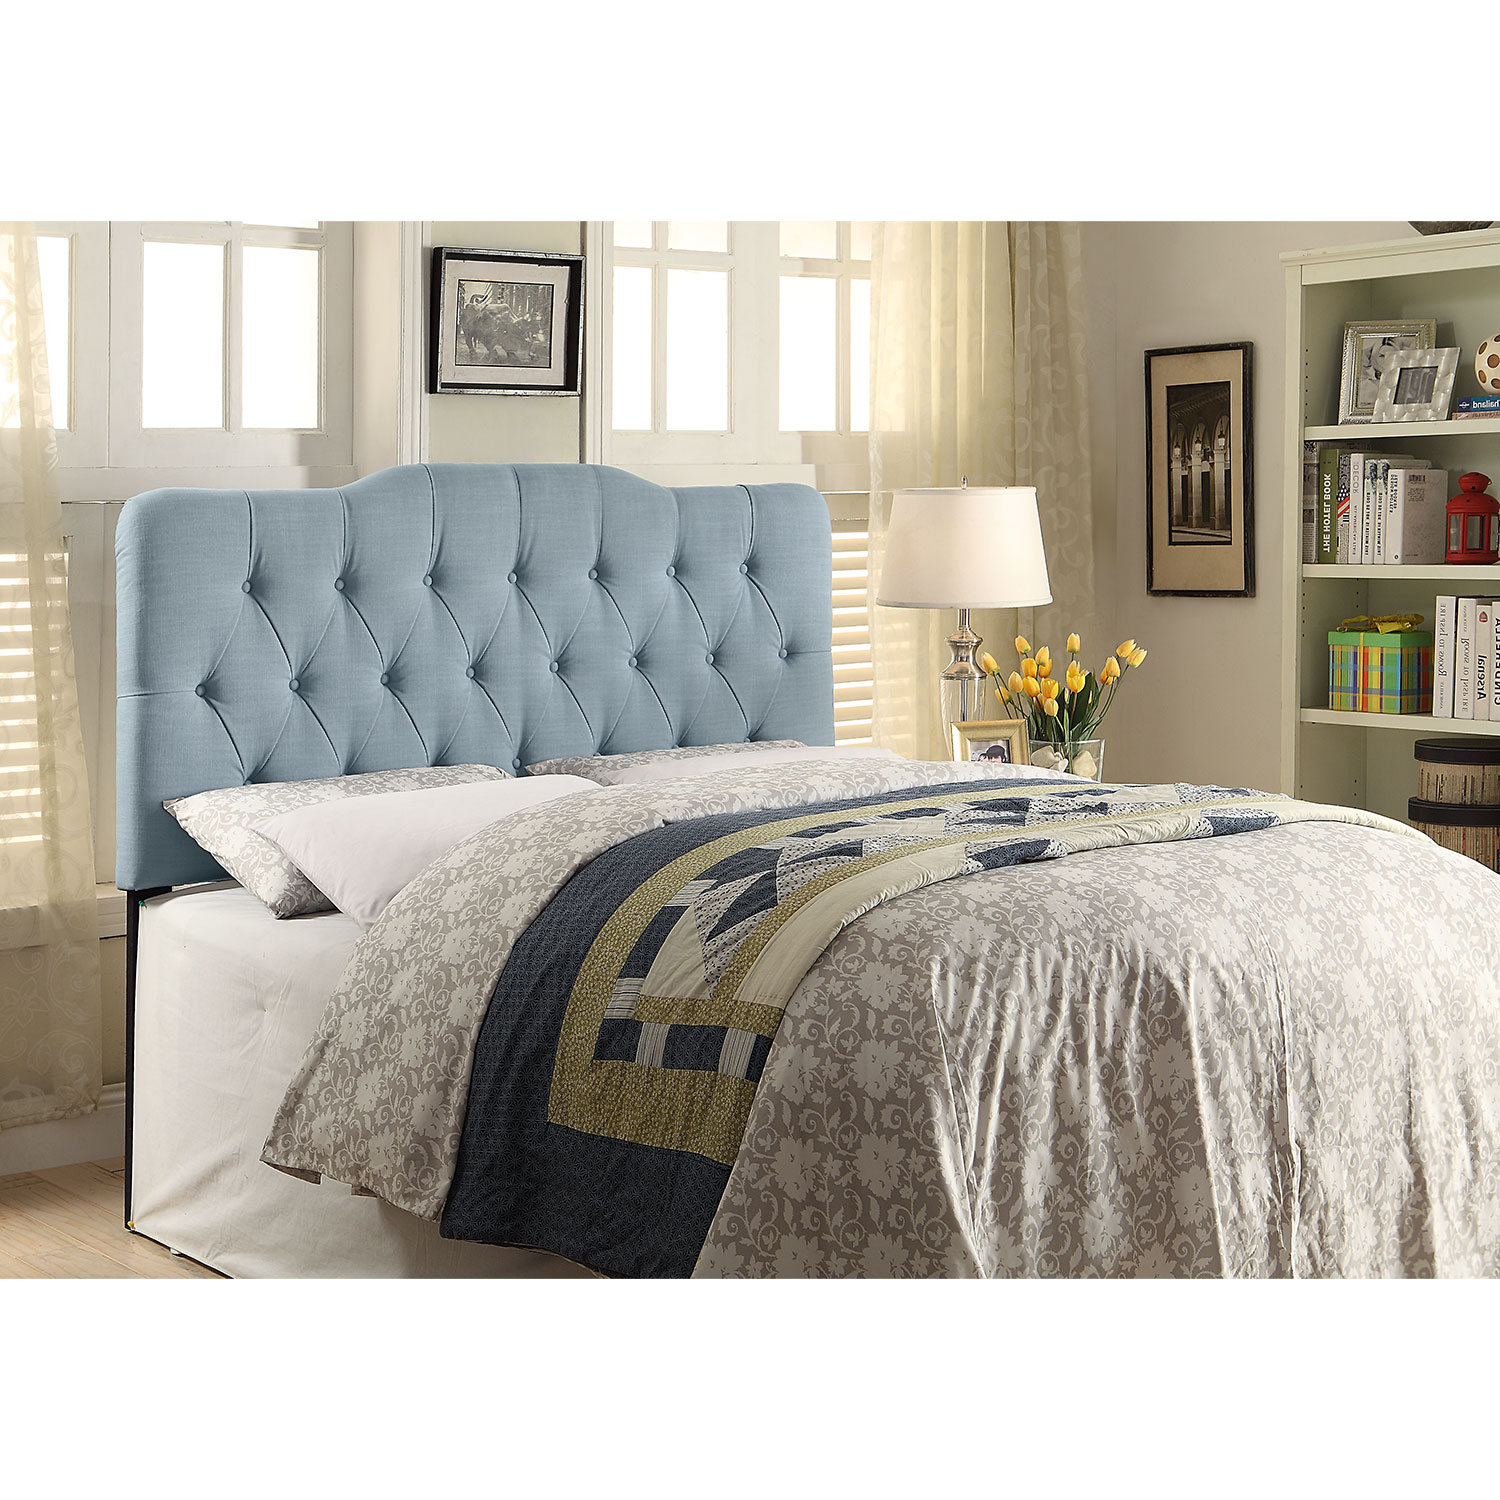 Bedroom Furniture - Quinn King Headboard - Blue